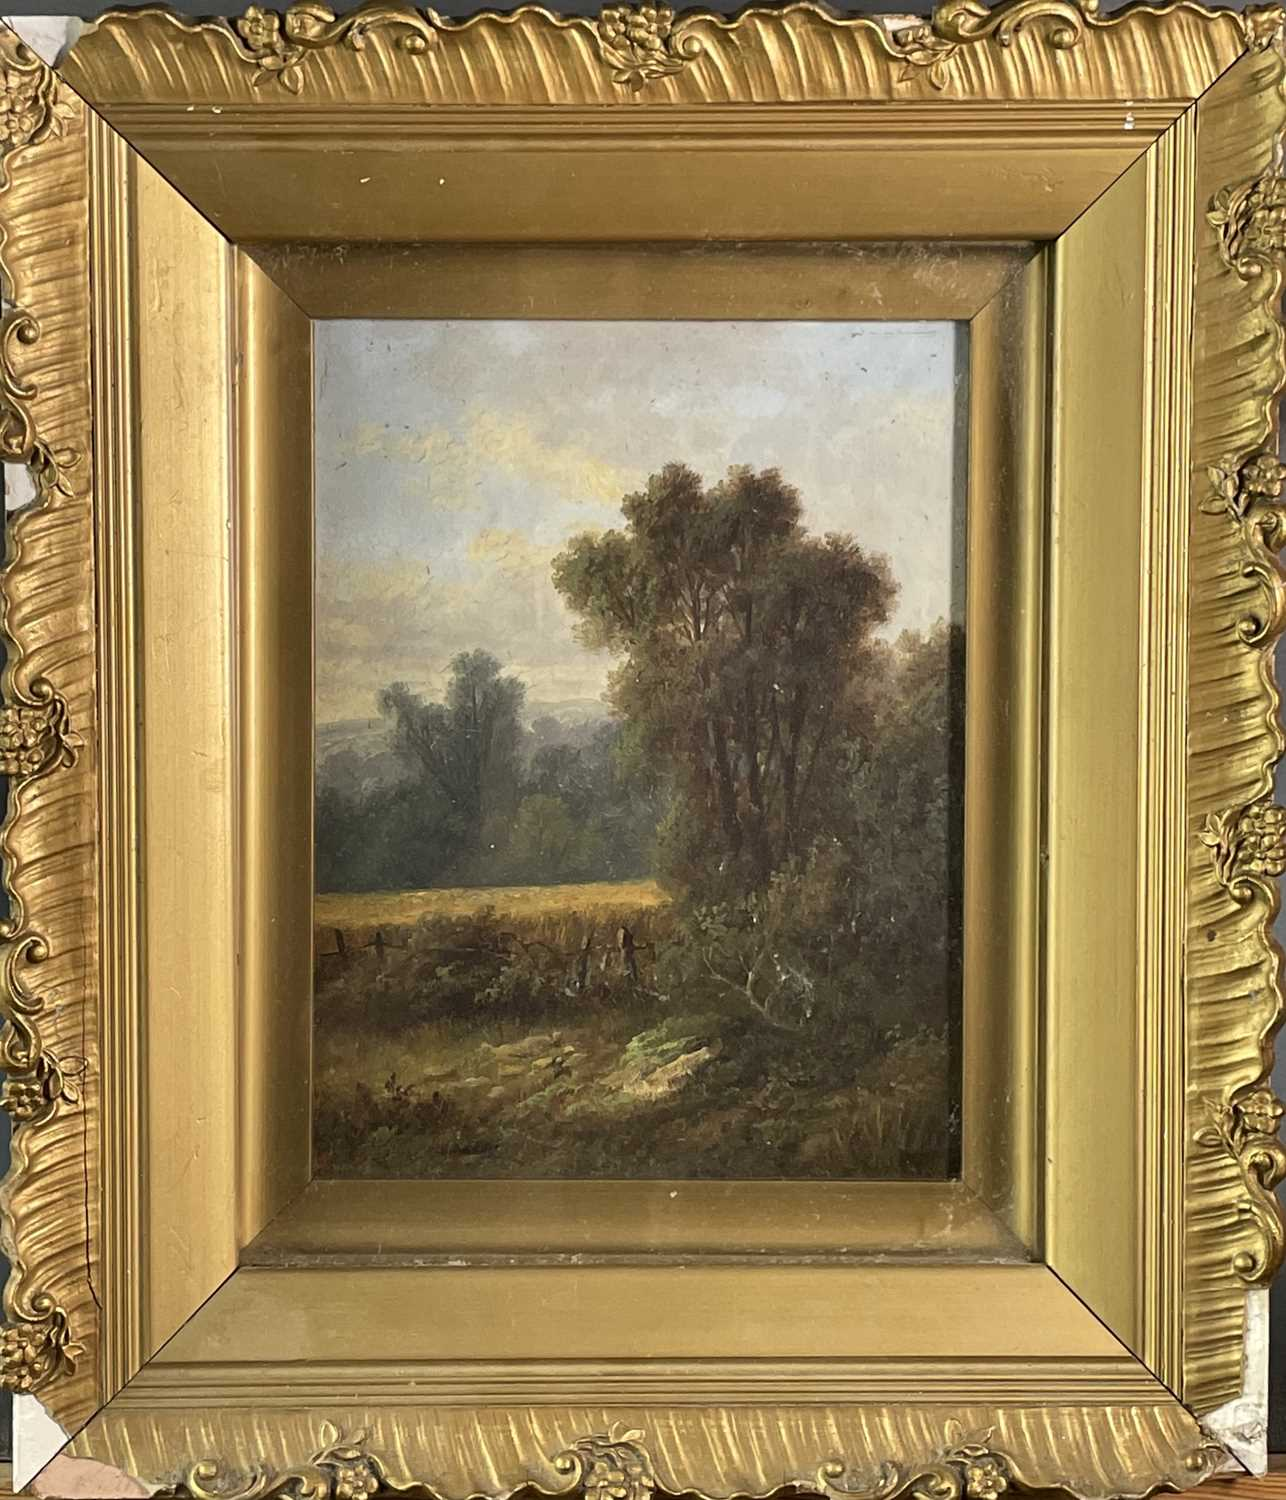 Victorian School A pair of landascapes Oil on canvas Each initialed A. S. 22x17cm - Image 7 of 7